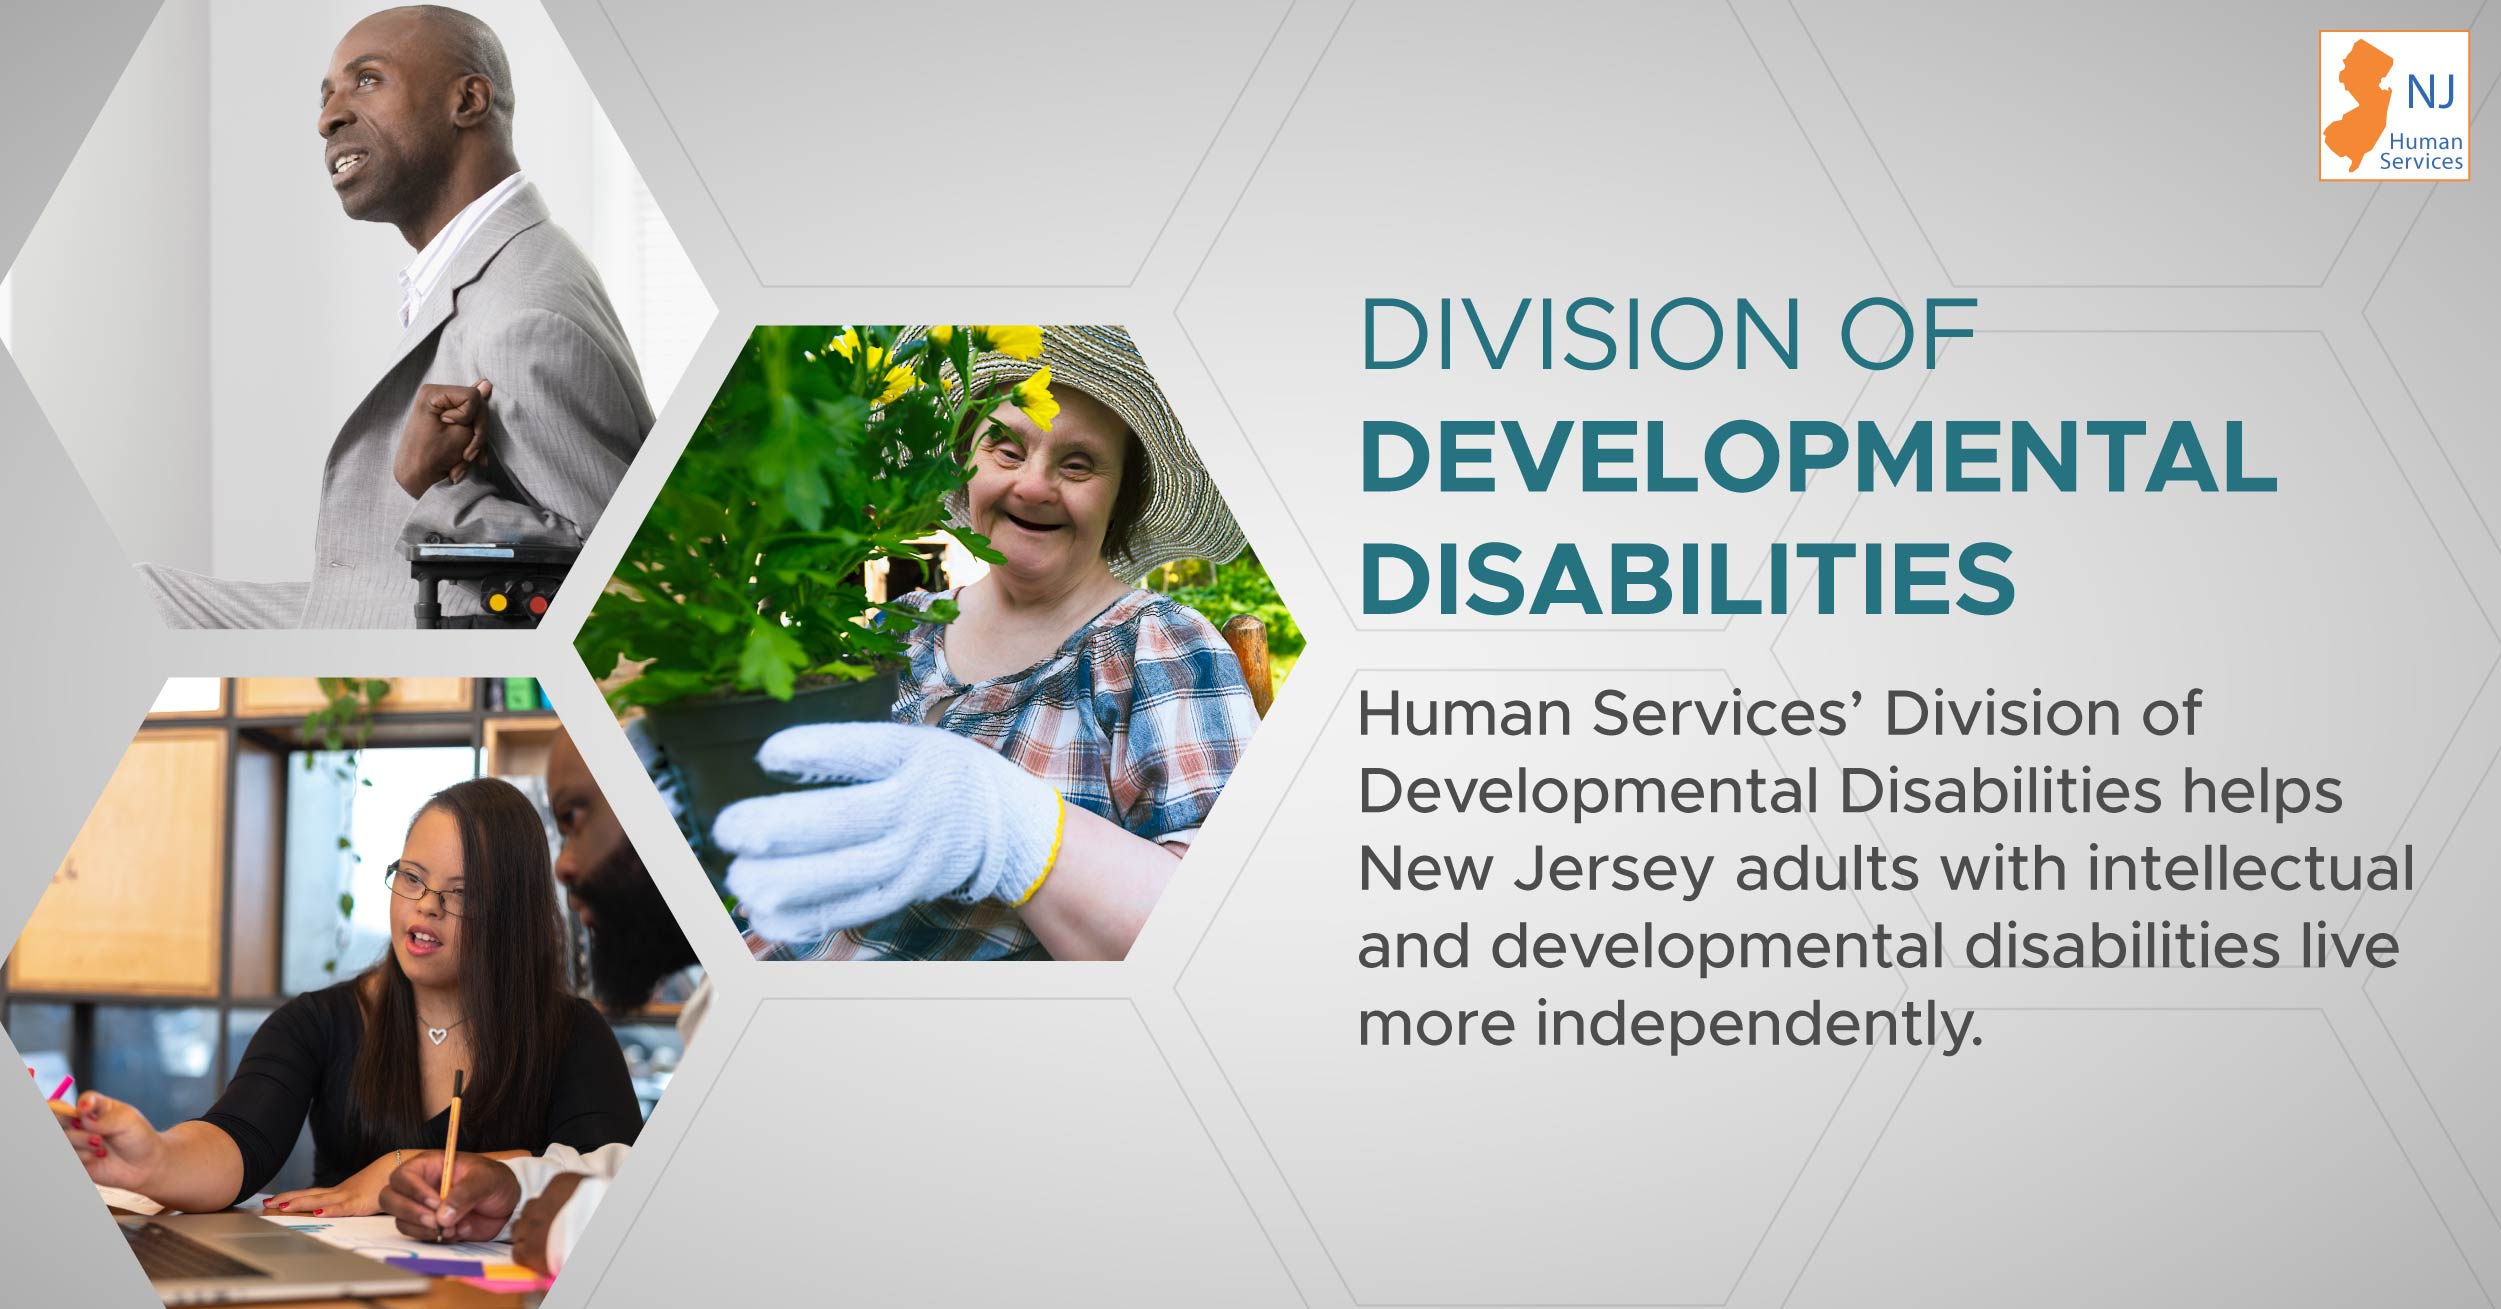 A collage of individuals with developmental disabilities, with the wording: Division of Developmental Disabilities - Human Services' Division of Developmental Disabilities helps New Jersey adults with intellectual and developmental disabilities live more independently.